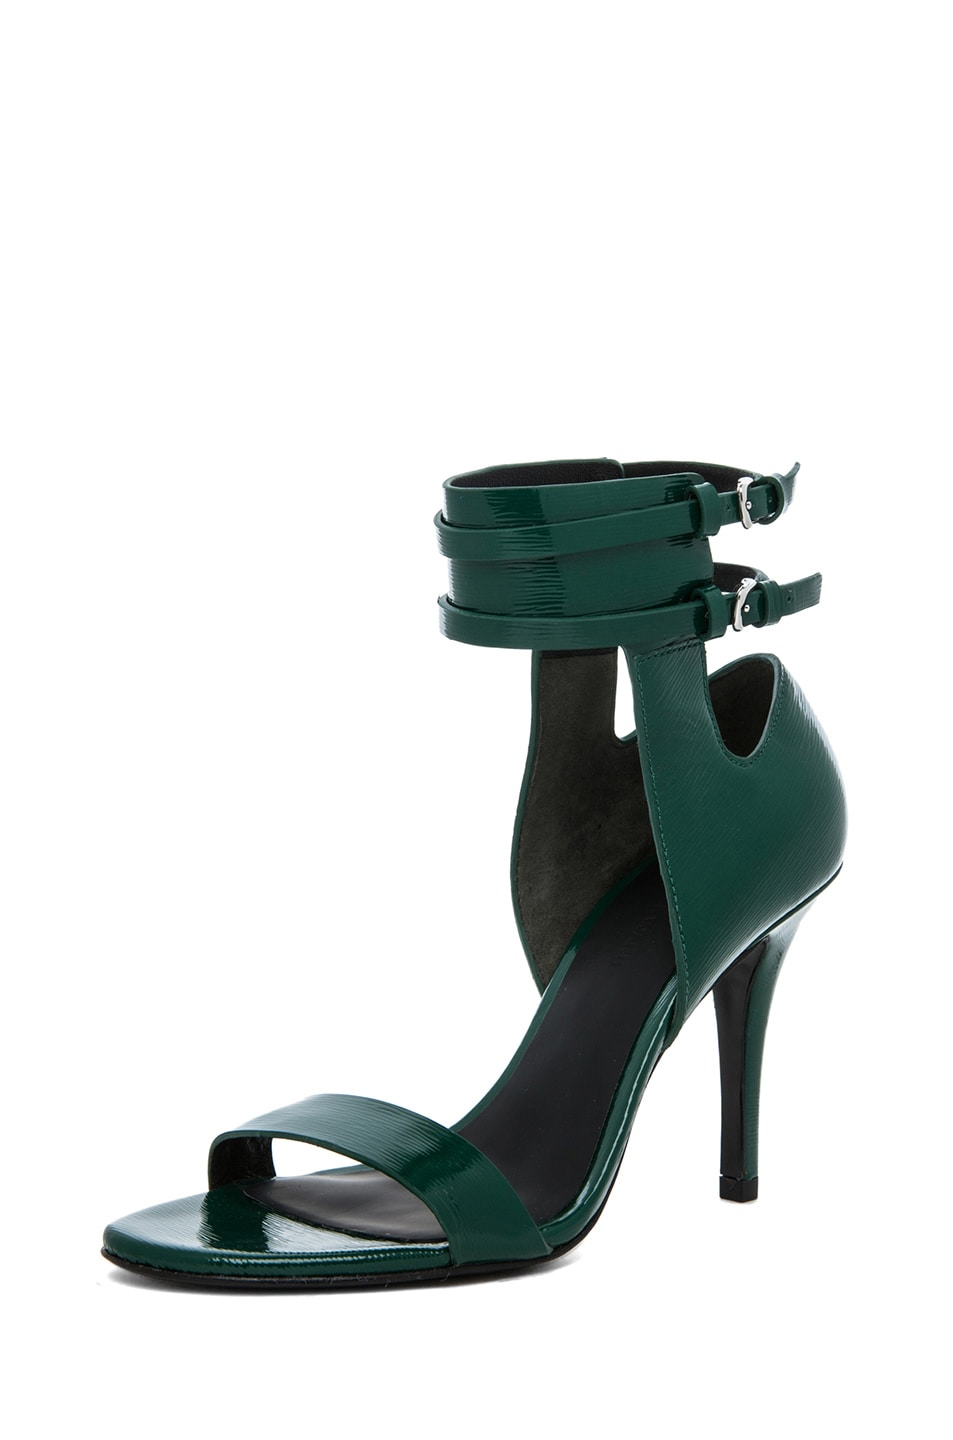 Image 2 of Alexander Wang Johanna Shiny Calf Ankle Cuff Sandal in Vine